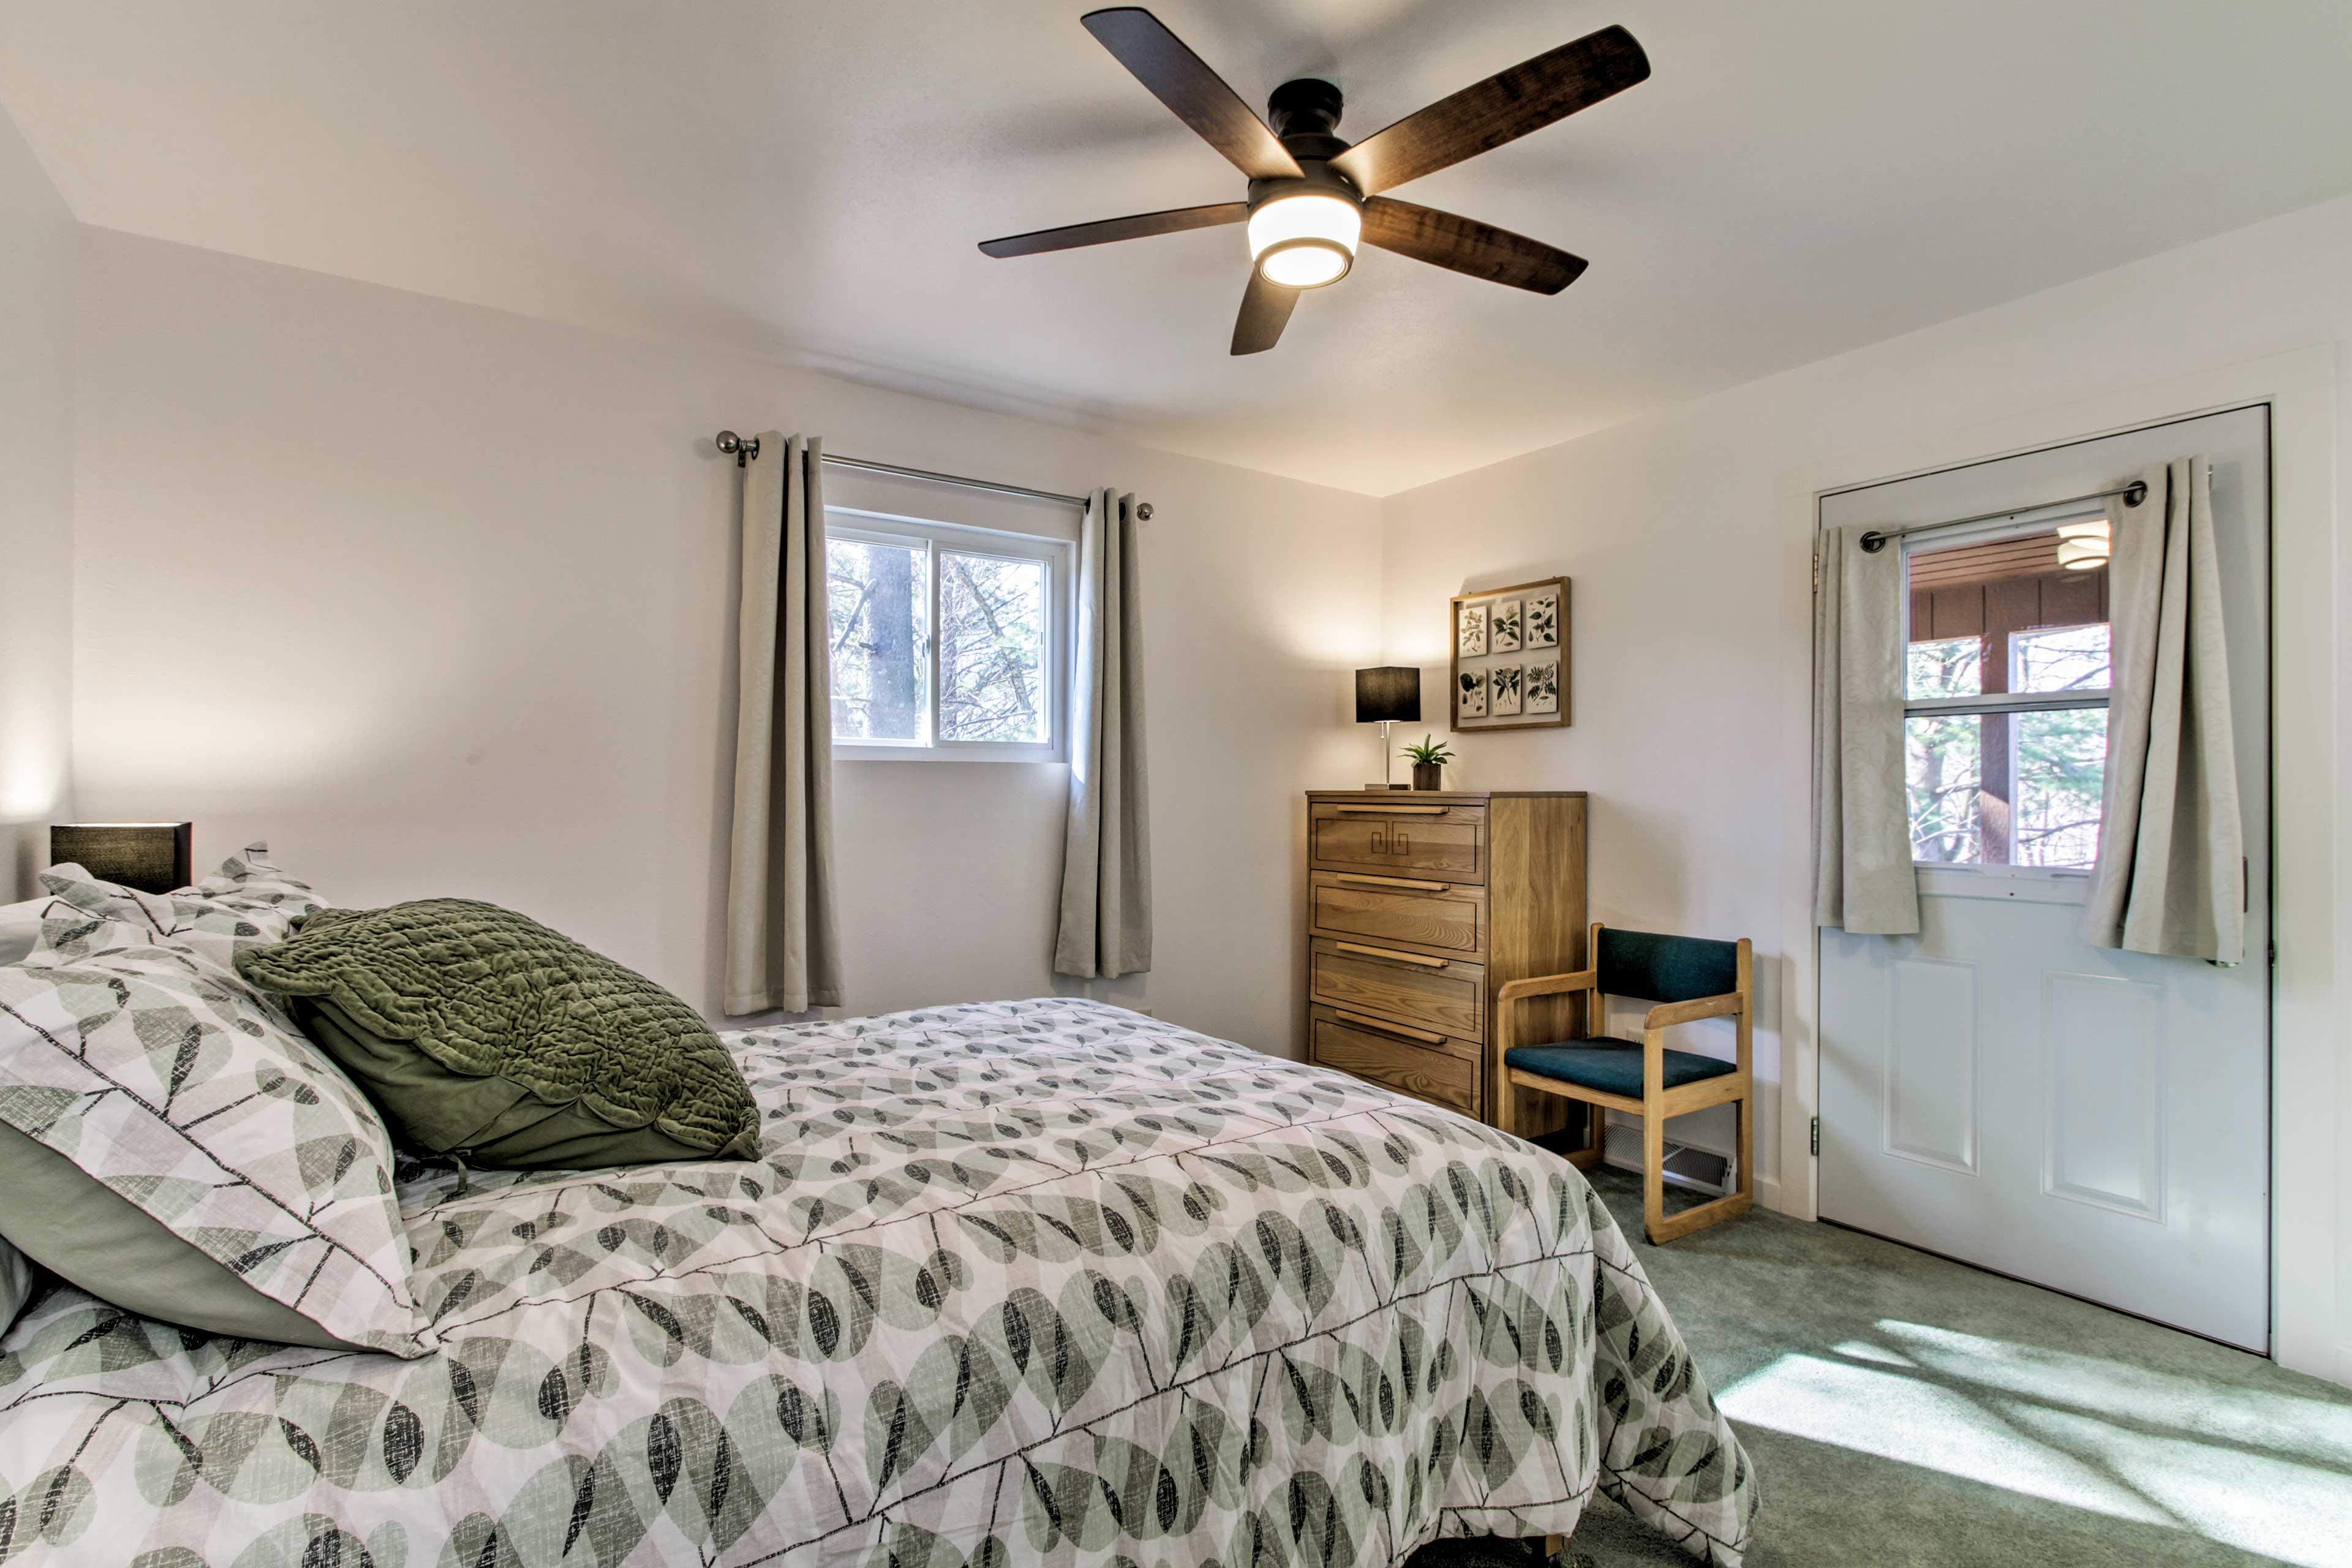 The master bedroom includes a queen-sized bed.